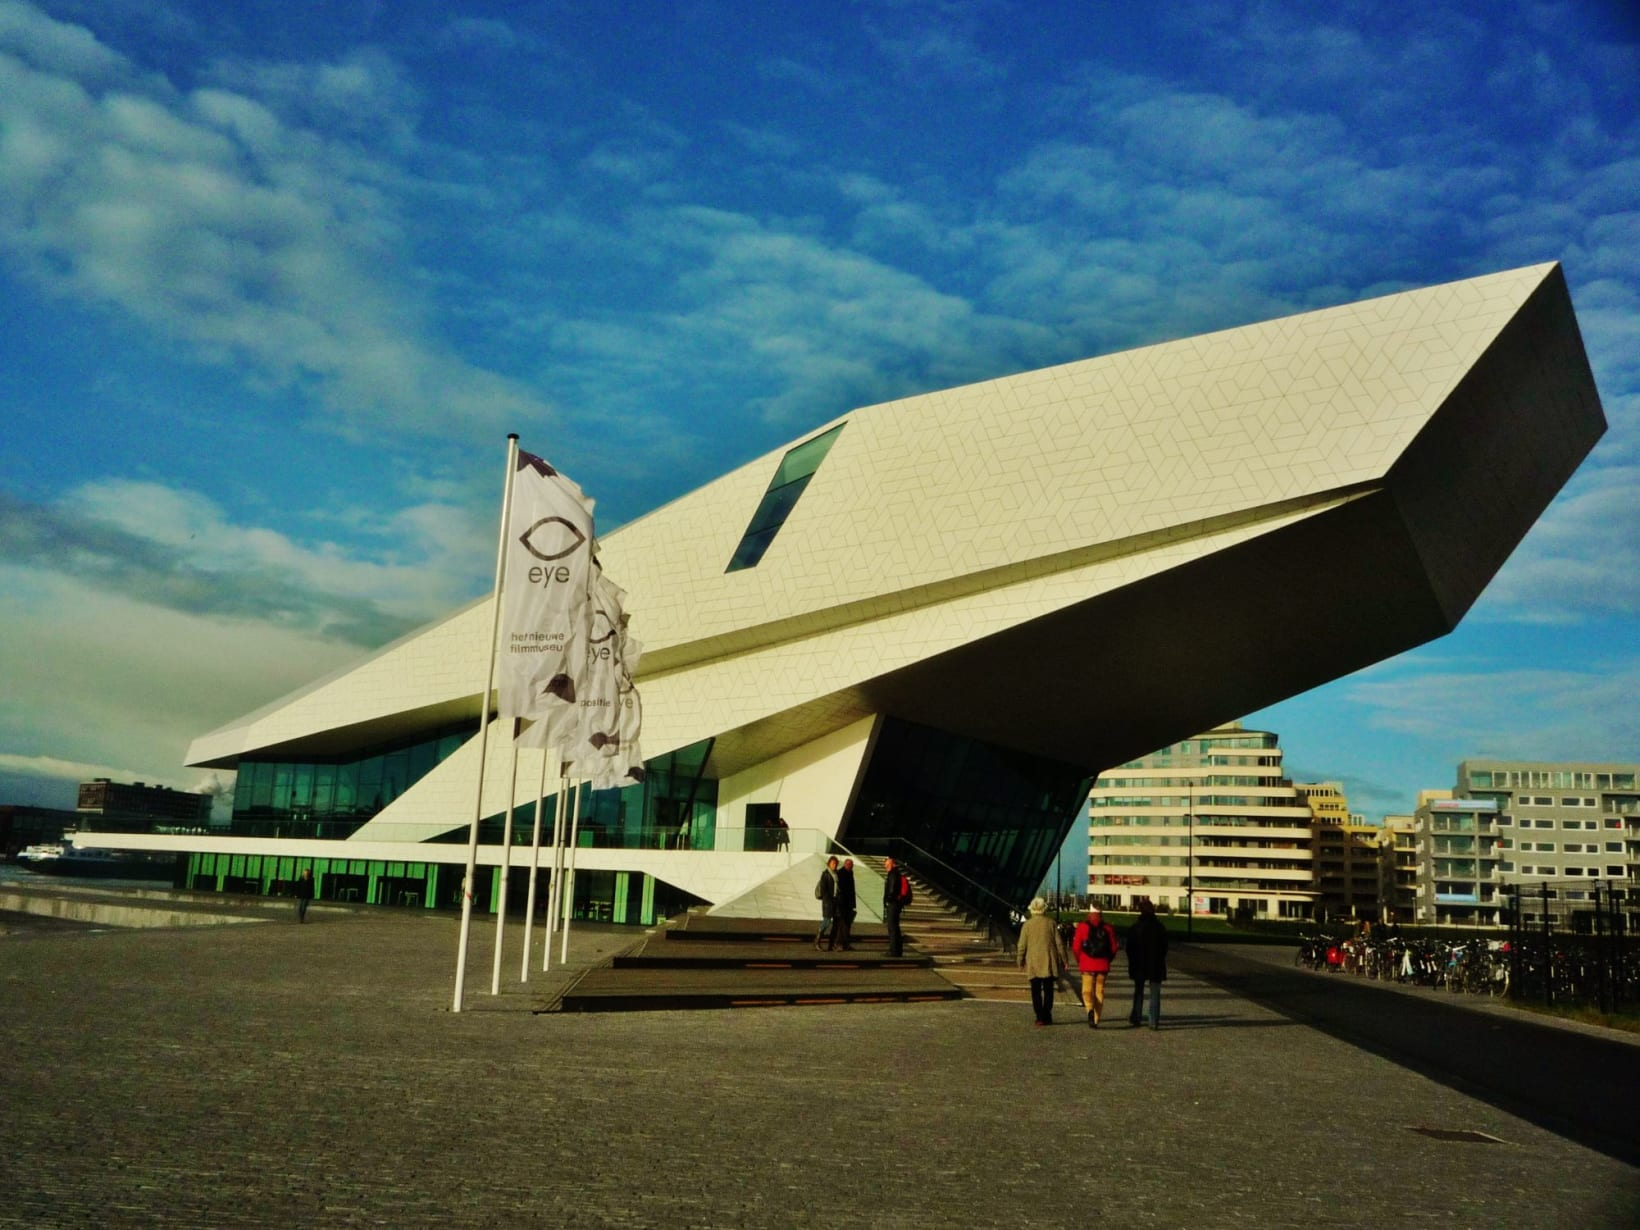 Photograph of the Eye Filmmuseum, against a blue sky. People walk towards the building.